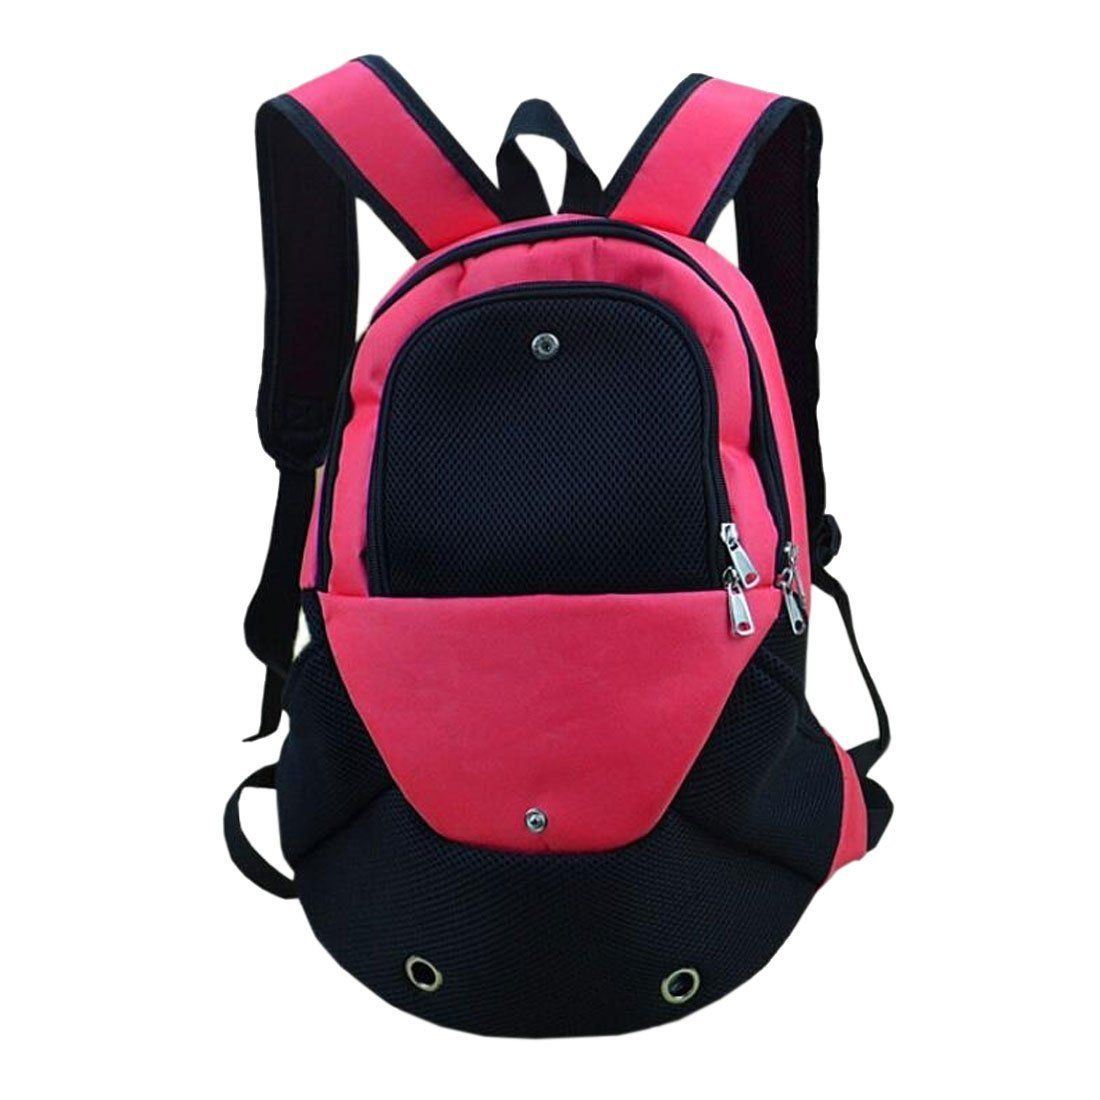 9126f3aed6fa Puppy Cat Backpack Carrier for Travel Outdoor